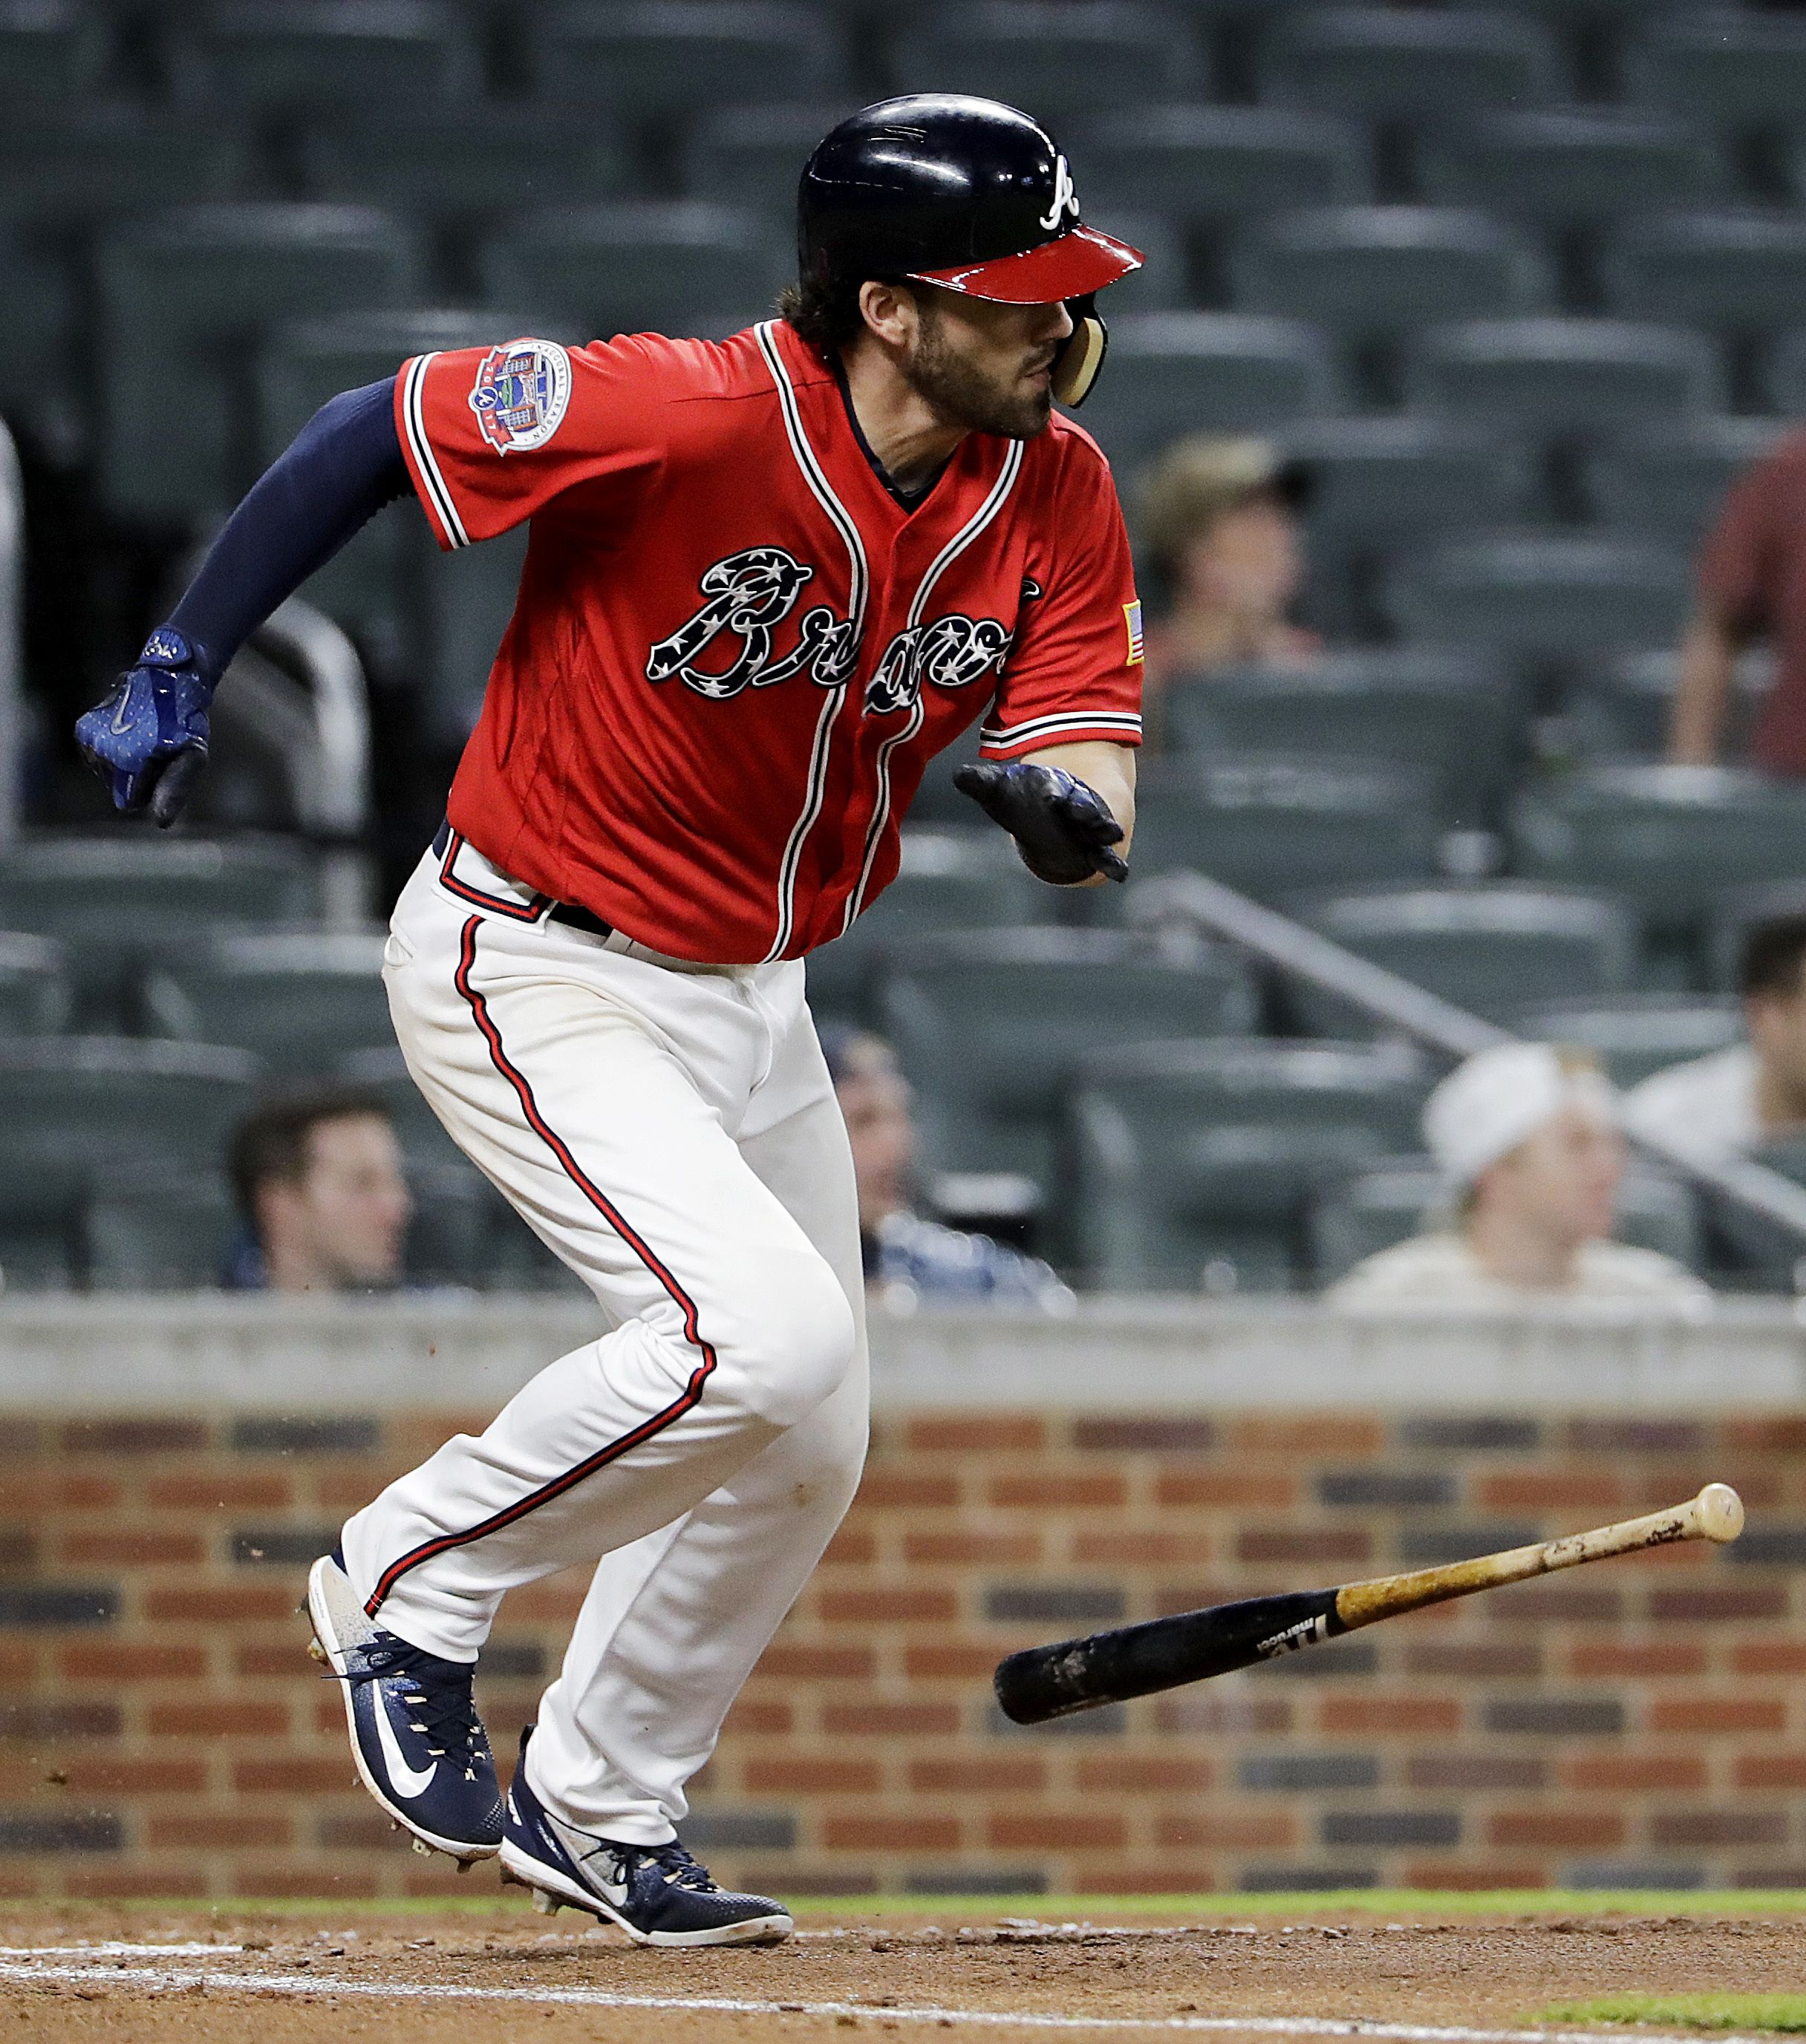 Atlanta Braves Dansby Swanson Grounds Into A Force Out To Score Teammate Tyler Flowers In The Sixth Inning Of A Baseball Game Braves Baseball Baseball Braves